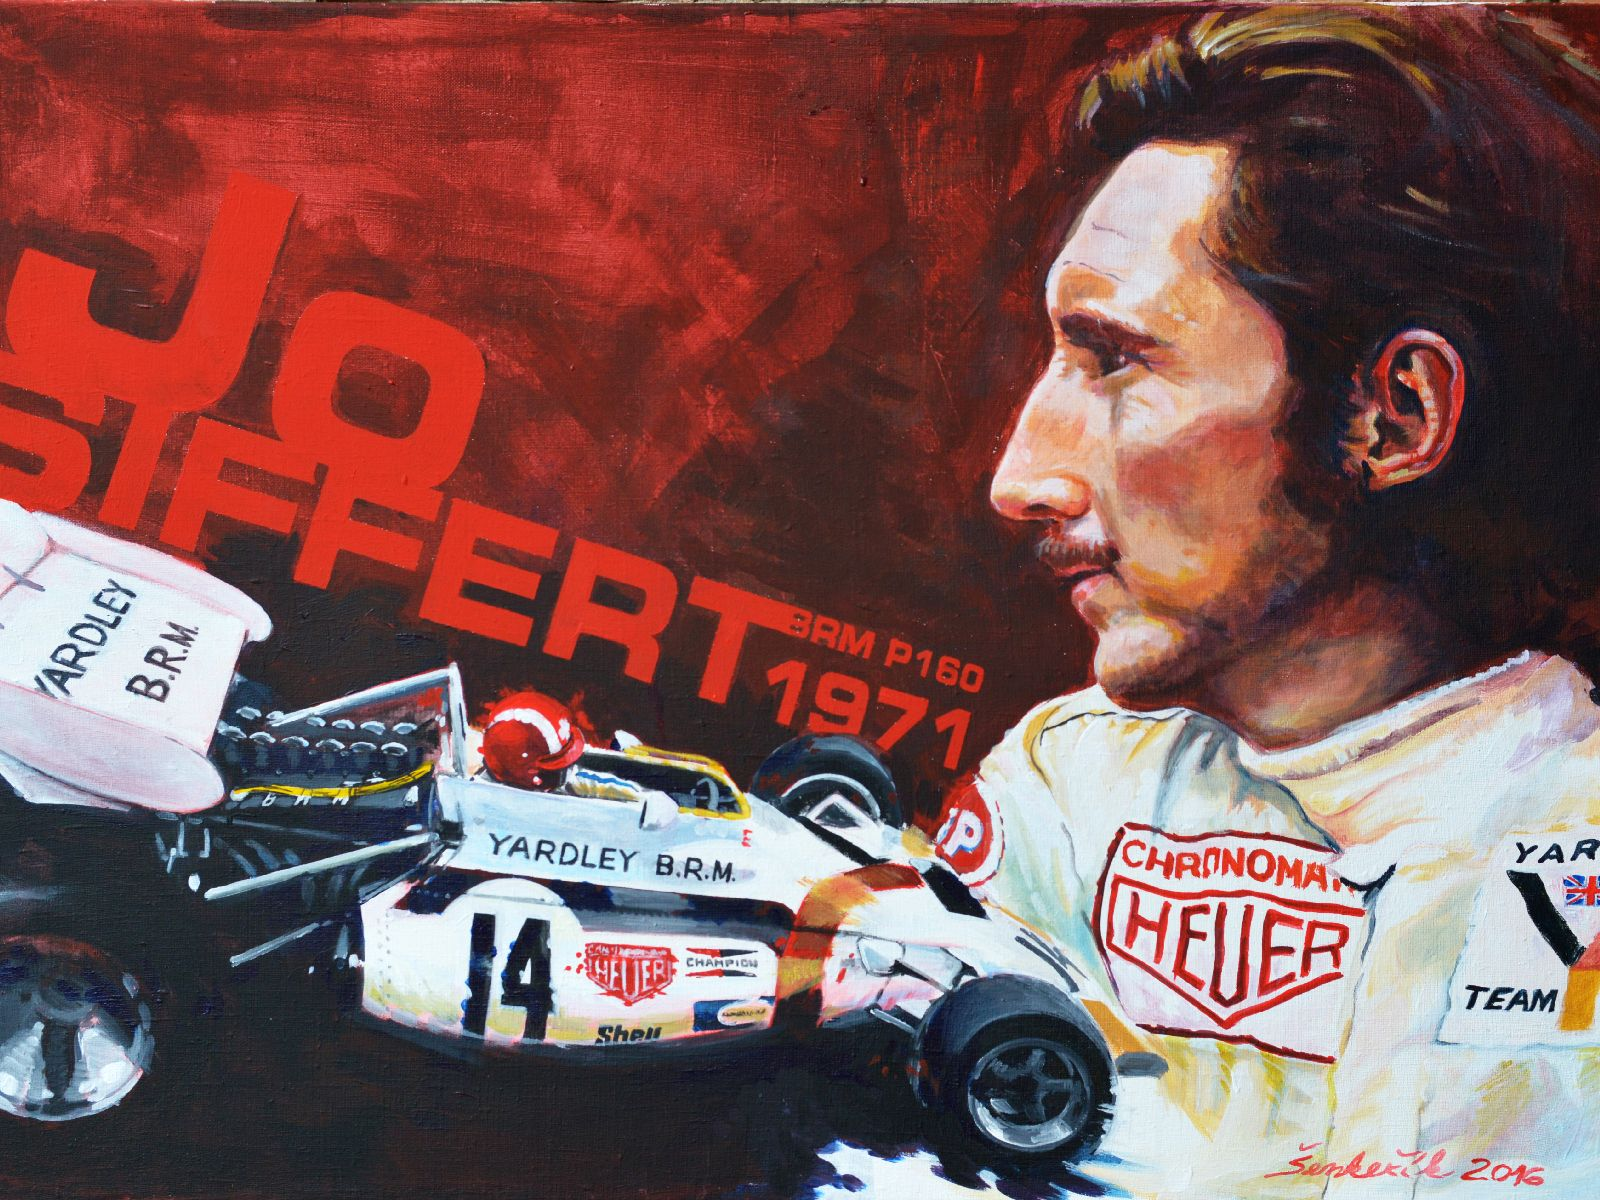 siffert.jpg (1600×1200)more about artist on www.p1gallery.cz